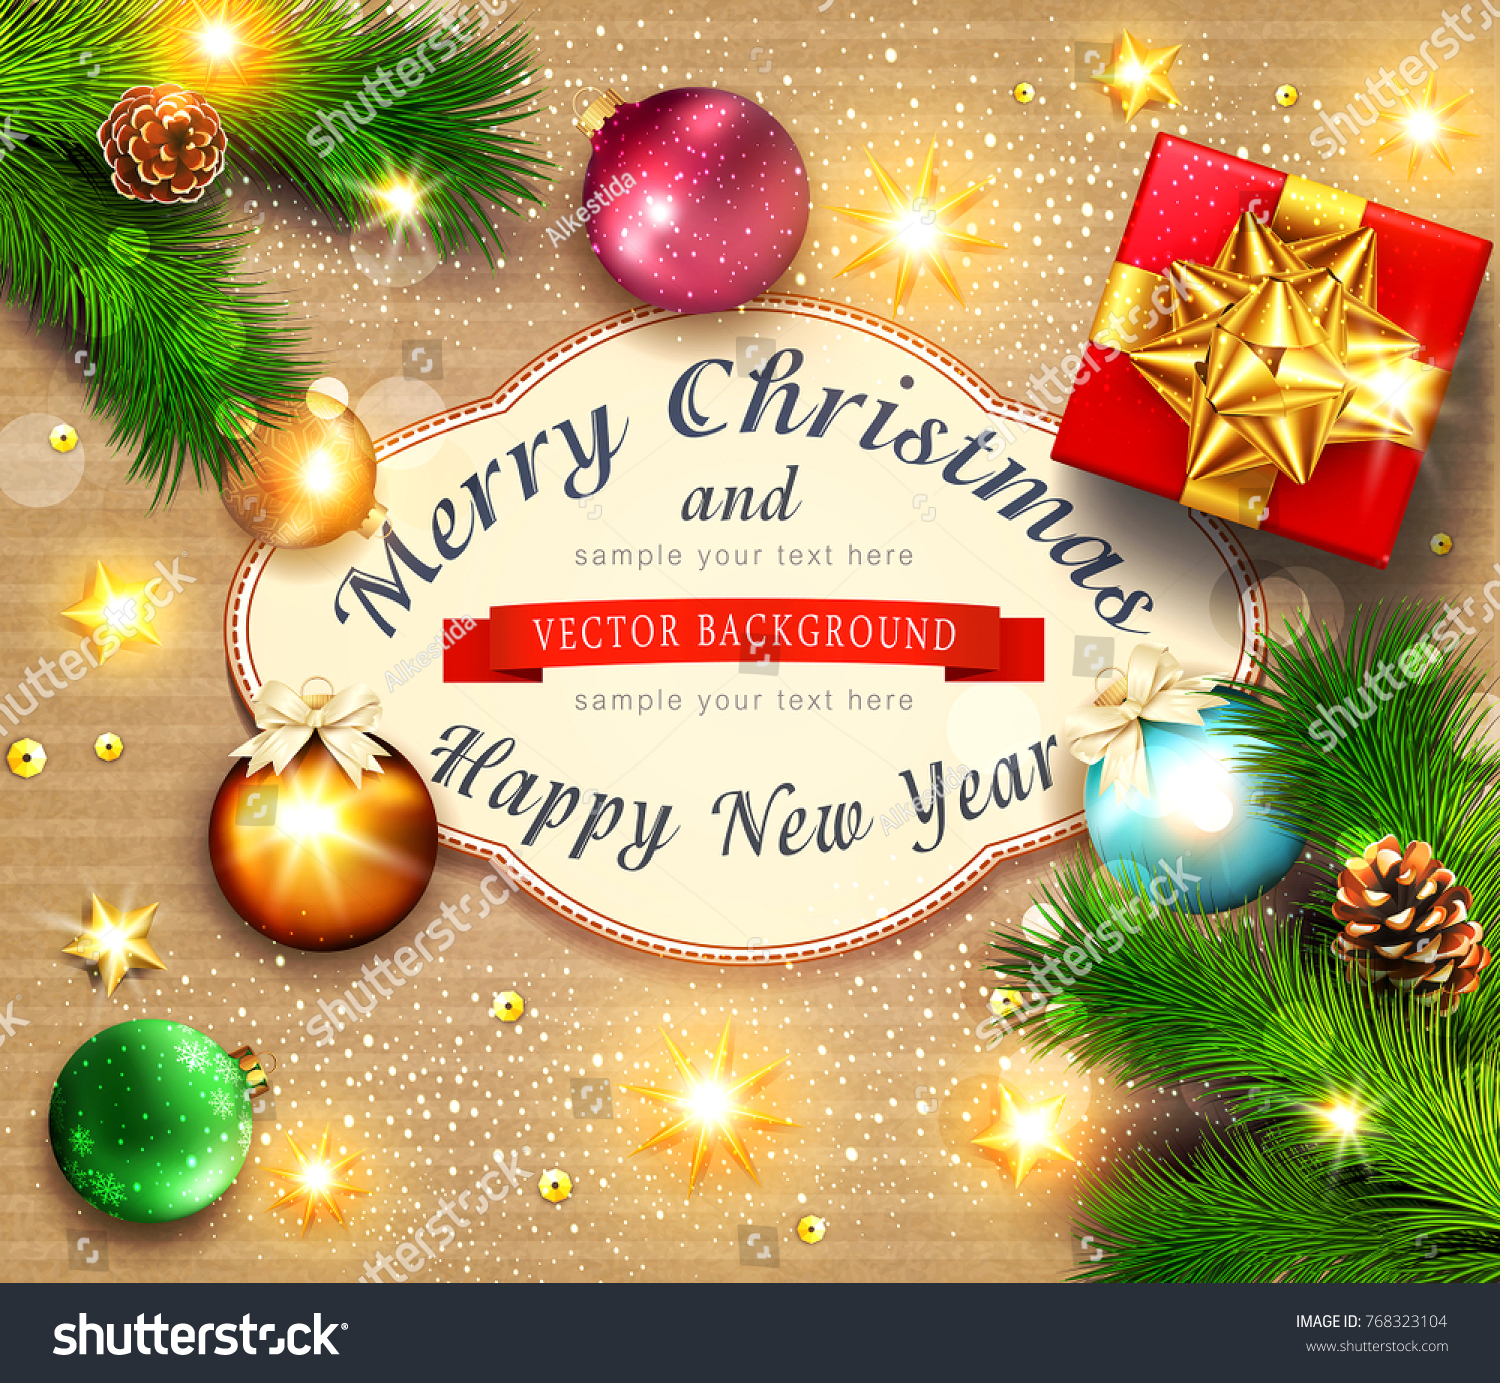 Vector illustration merry christmas happy new stock vector 768323104 vector illustration for merry christmas and happy new year greeting card with new years balls kristyandbryce Choice Image